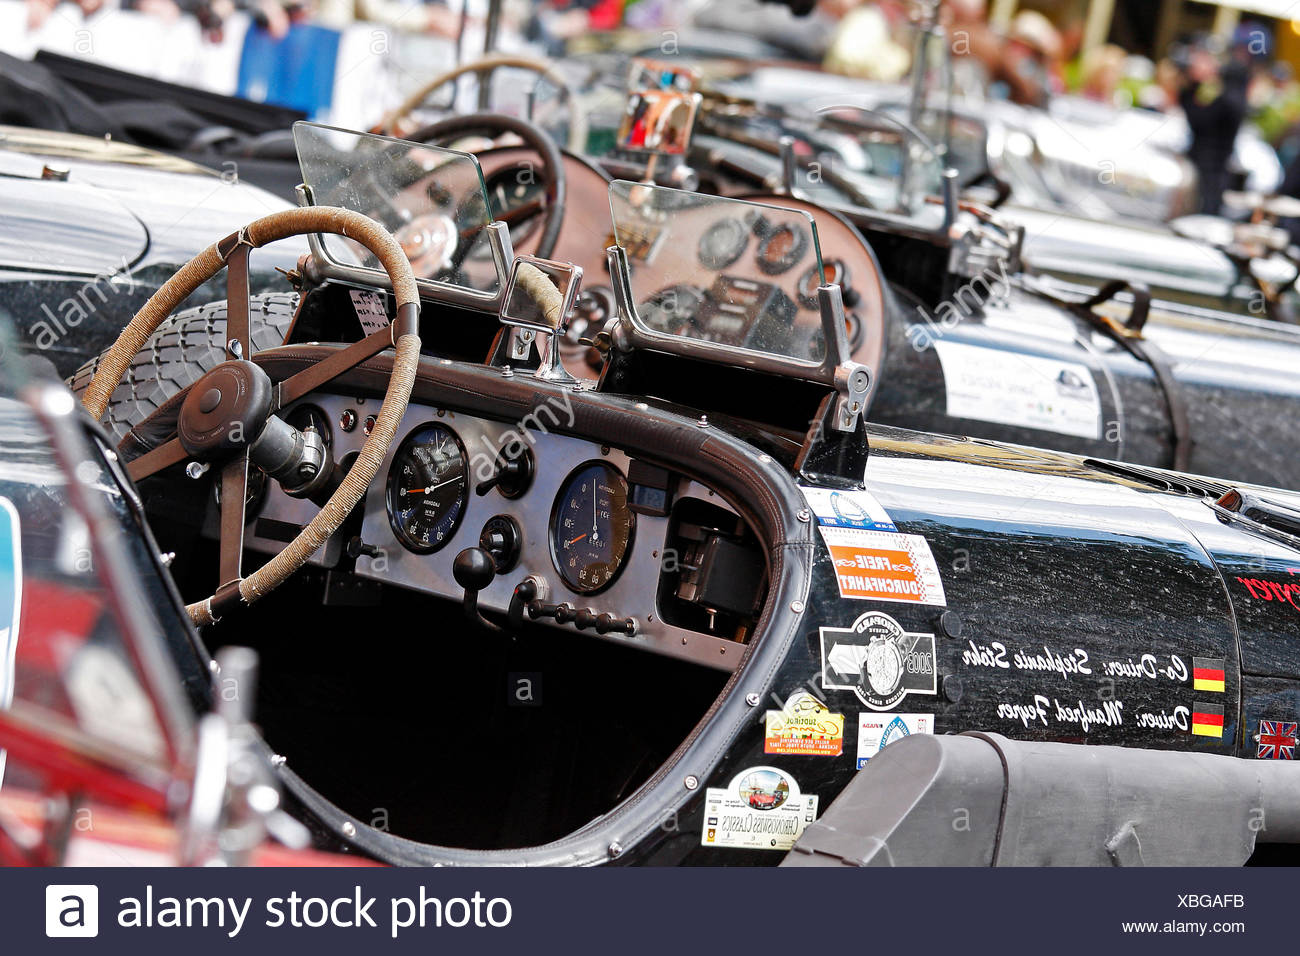 Pre-war classic cars parked in the pedestrian zone of Kitzbuehel, Kitzbuehel Alpine Rally 2011, Tyrol, Austria, Europe - Stock Image